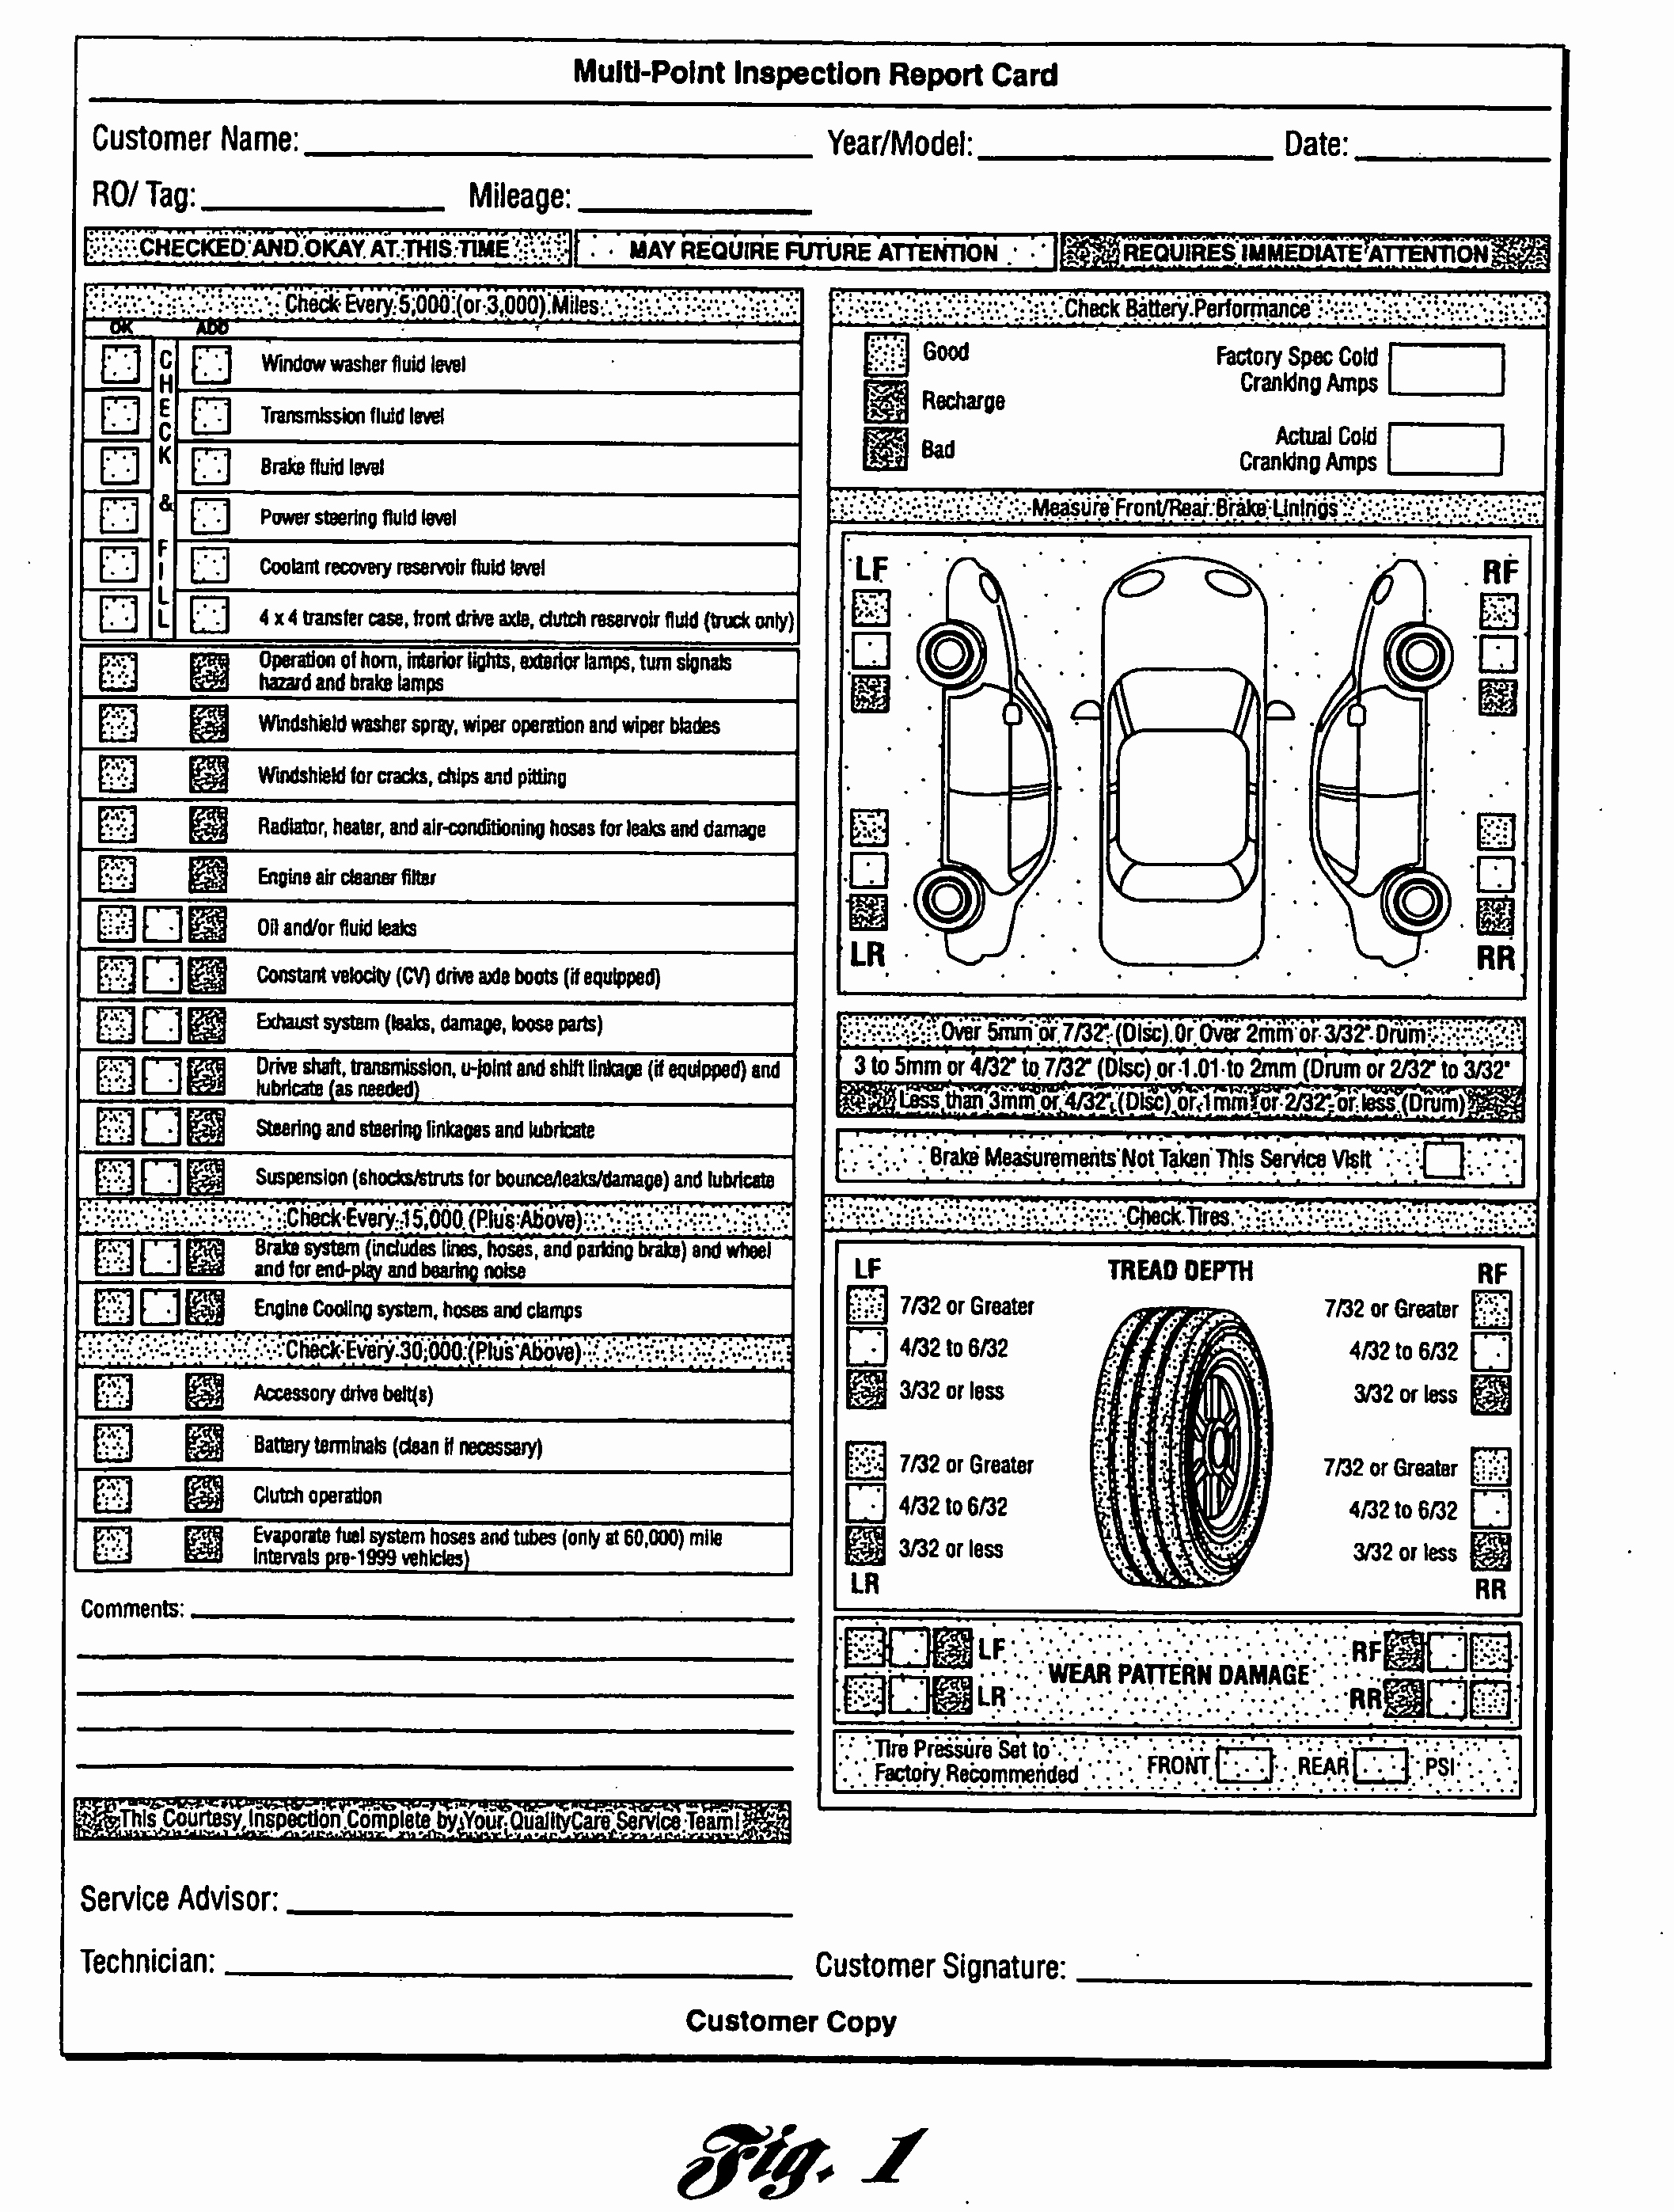 Vehicle Inspection Report Template New Multi Point Inspection Report Card as Re Mended by ford